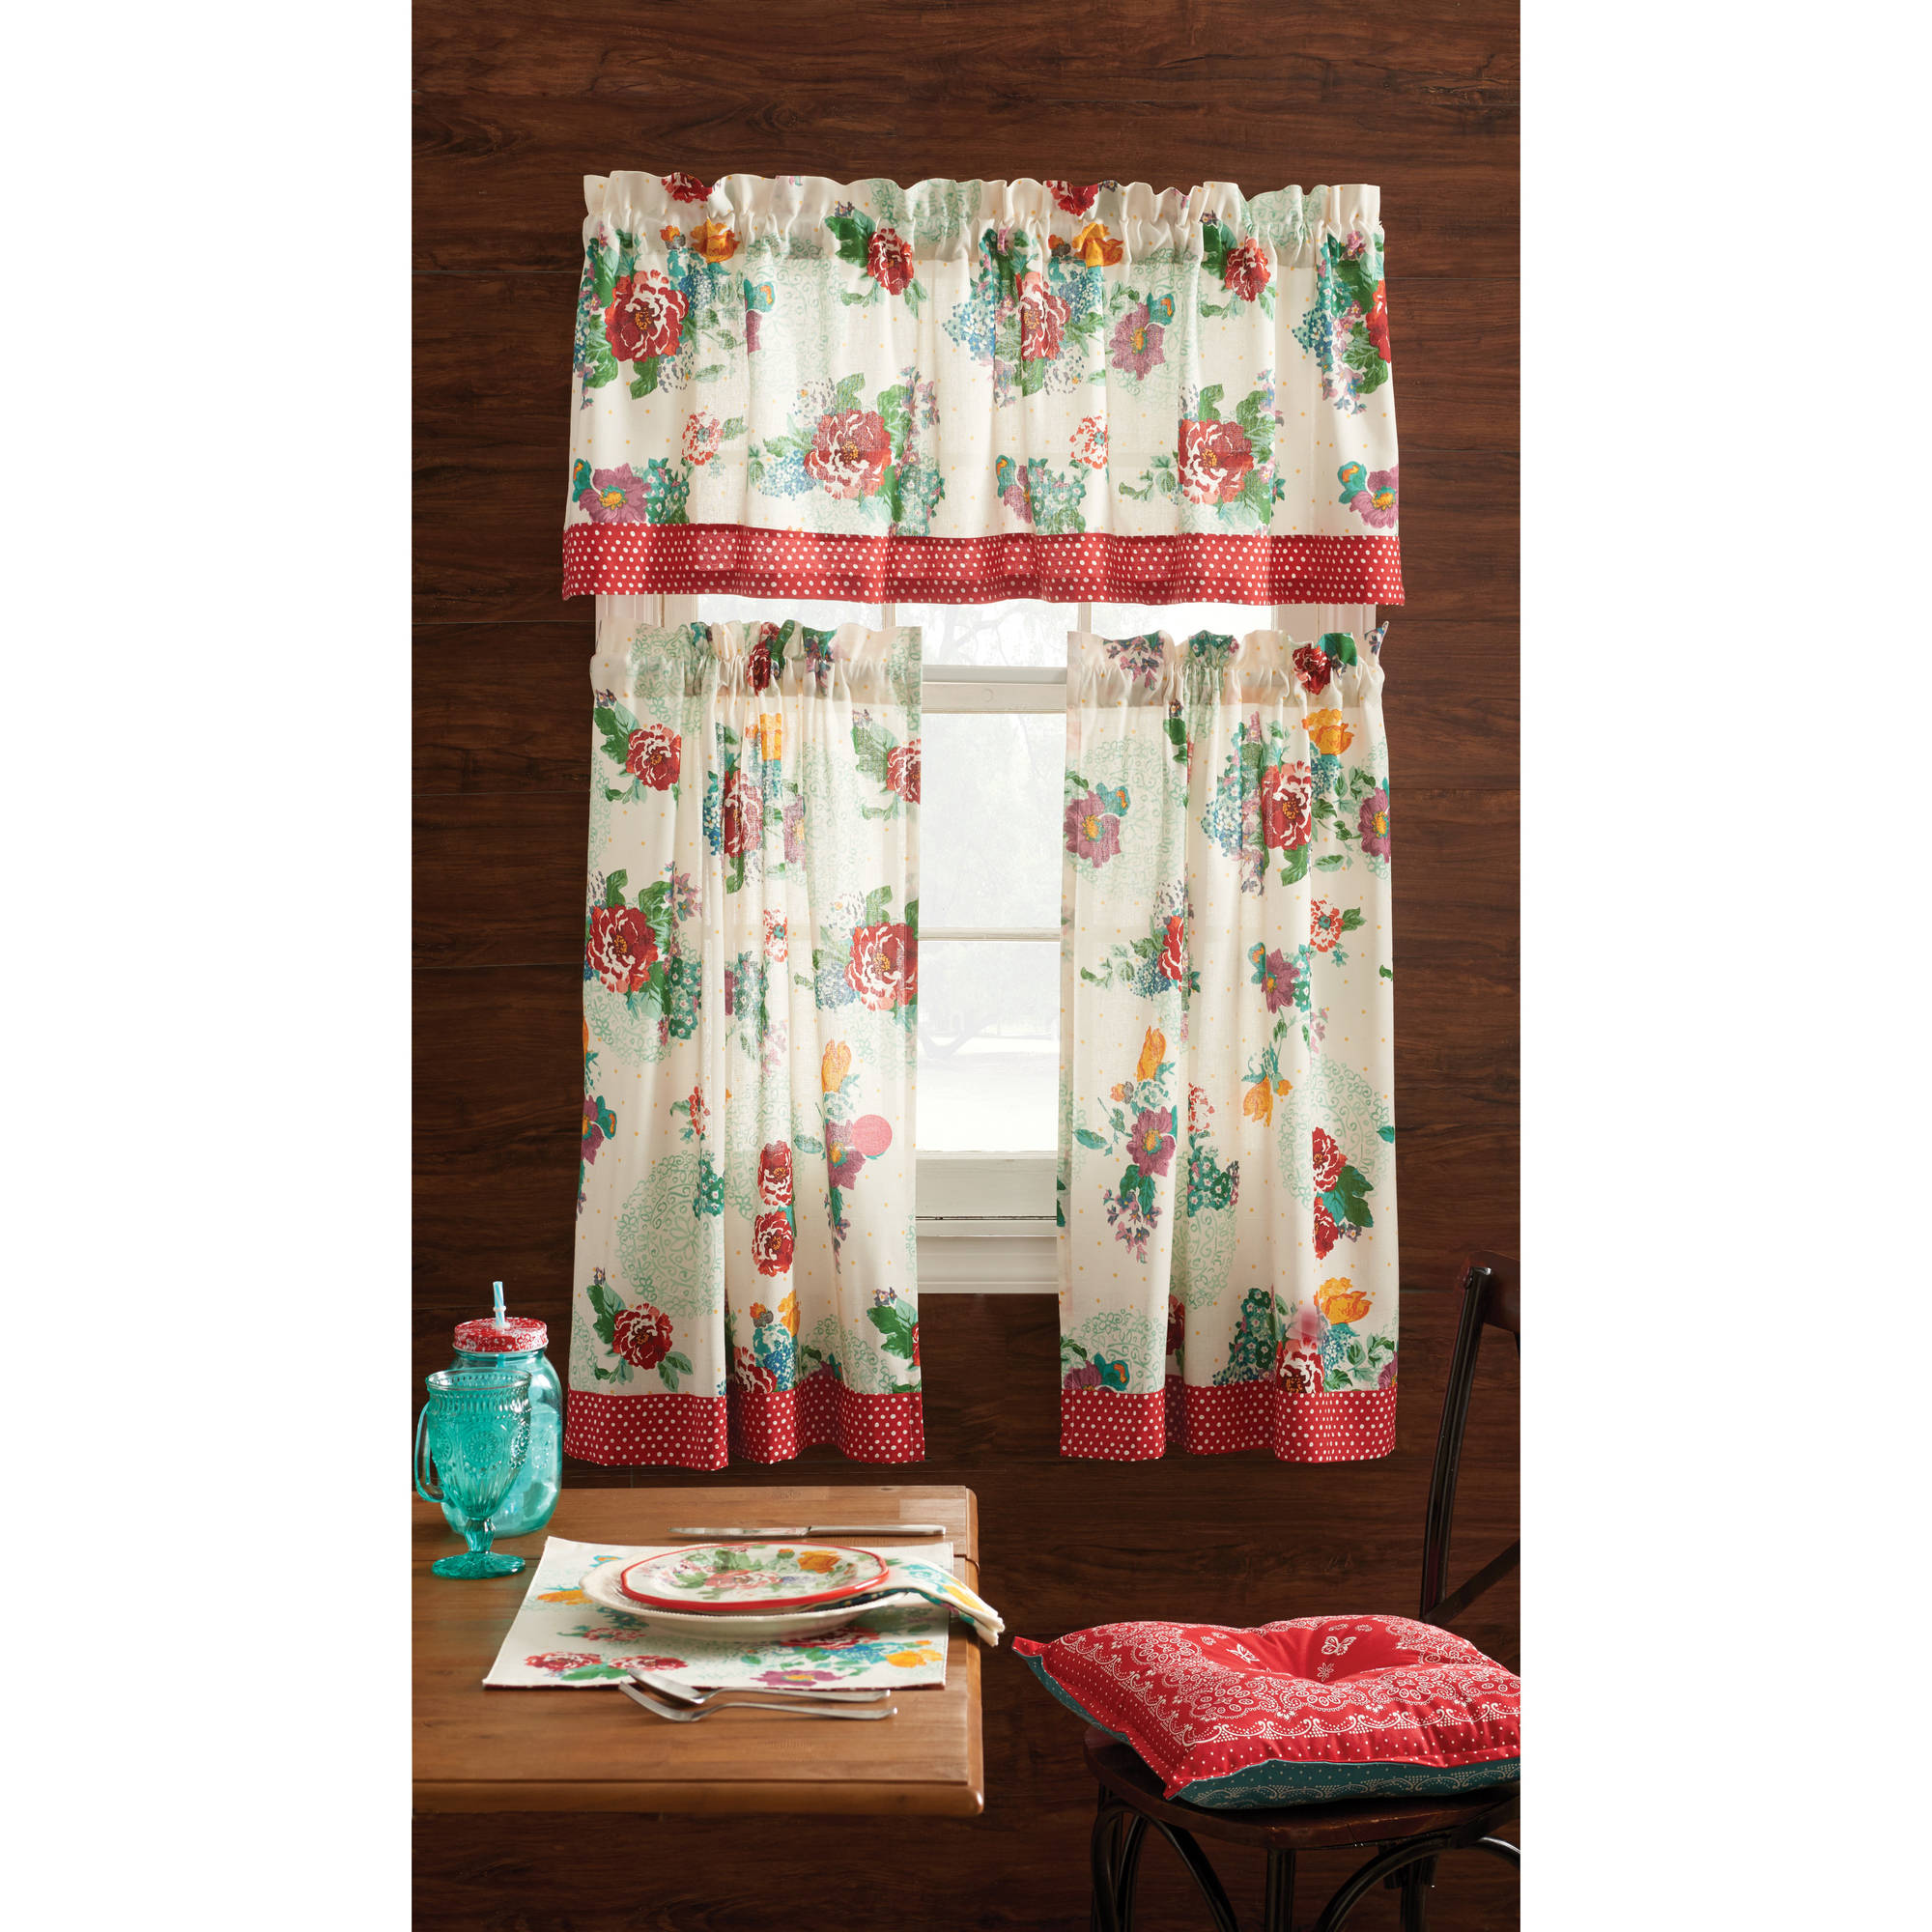 kitchen curtain patterns table rug the pioneer woman country garden 3pc kichen and valance set walmart com